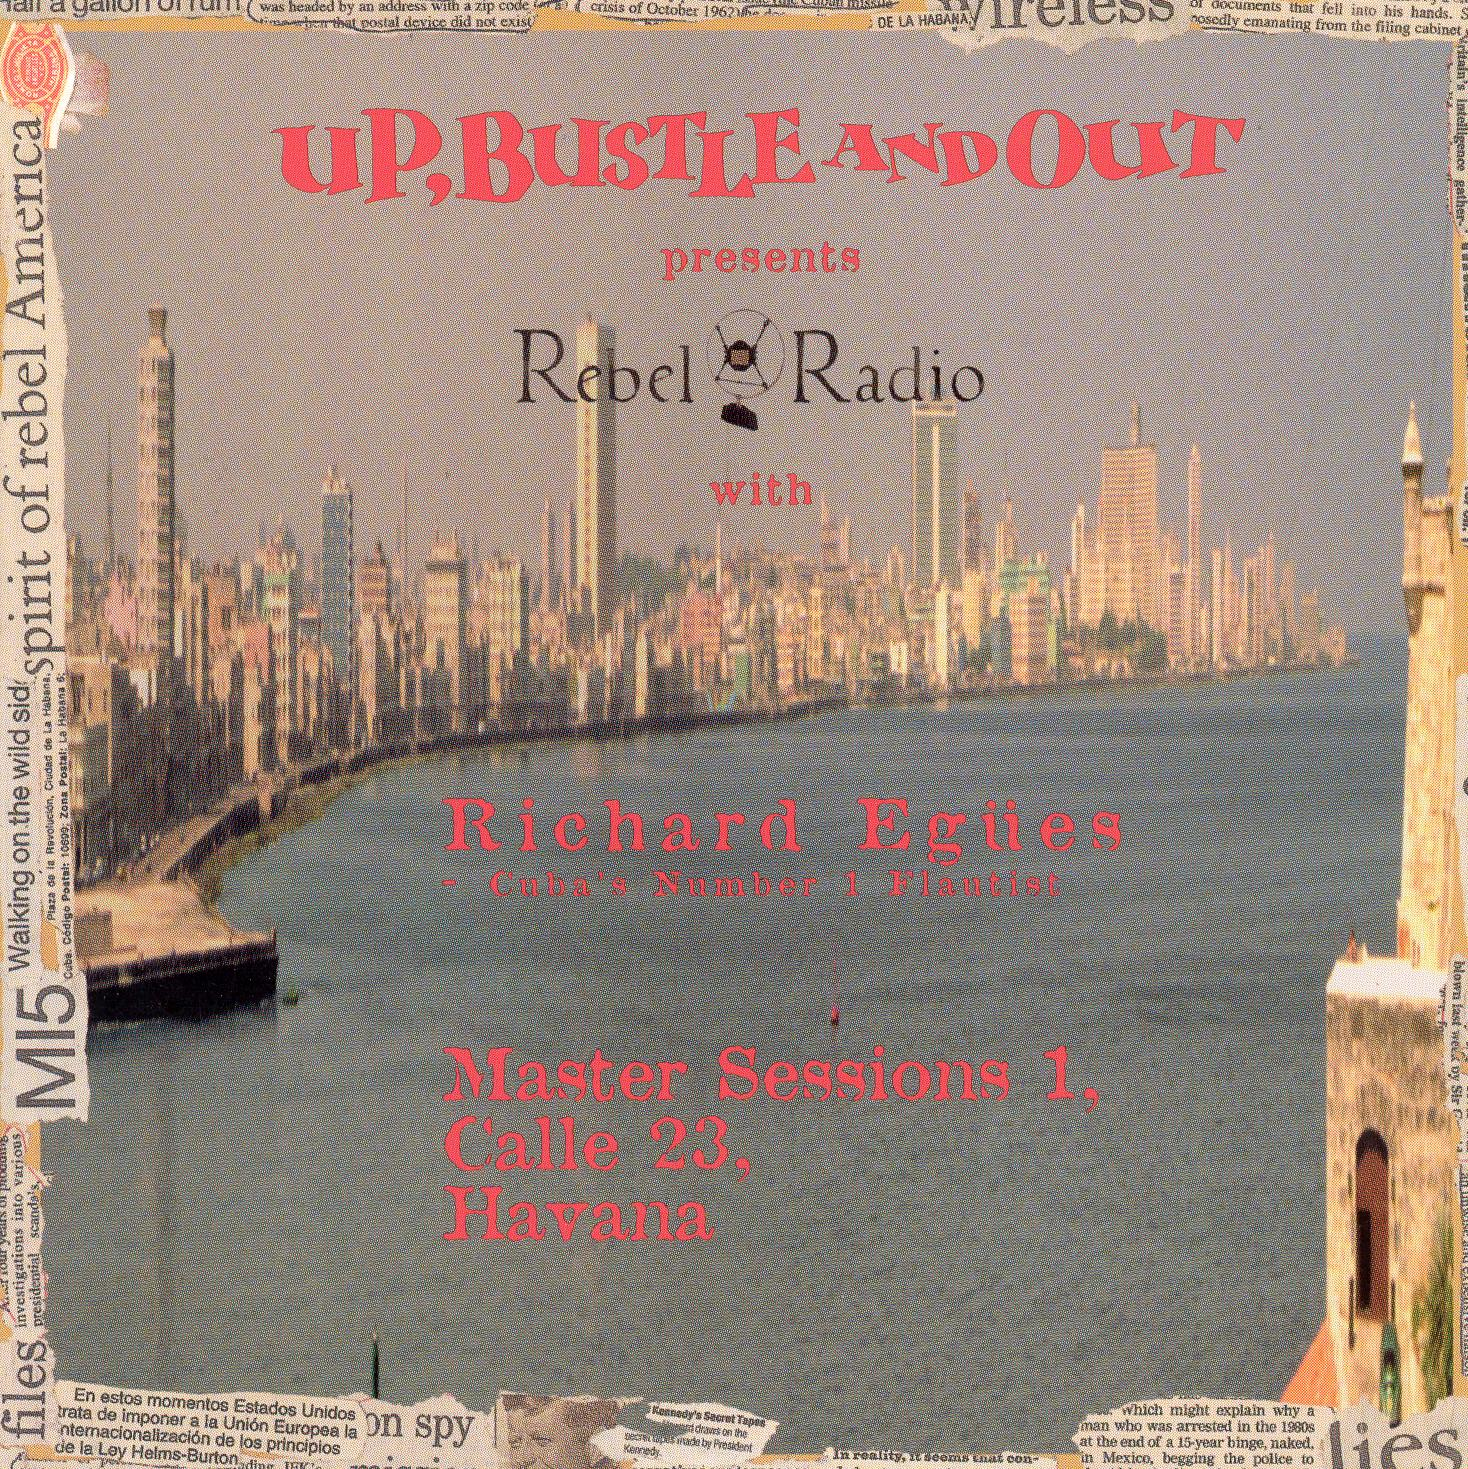 Up, Bustle and Out: Master Sessions Vol. 1 - Rebel Radio Diary